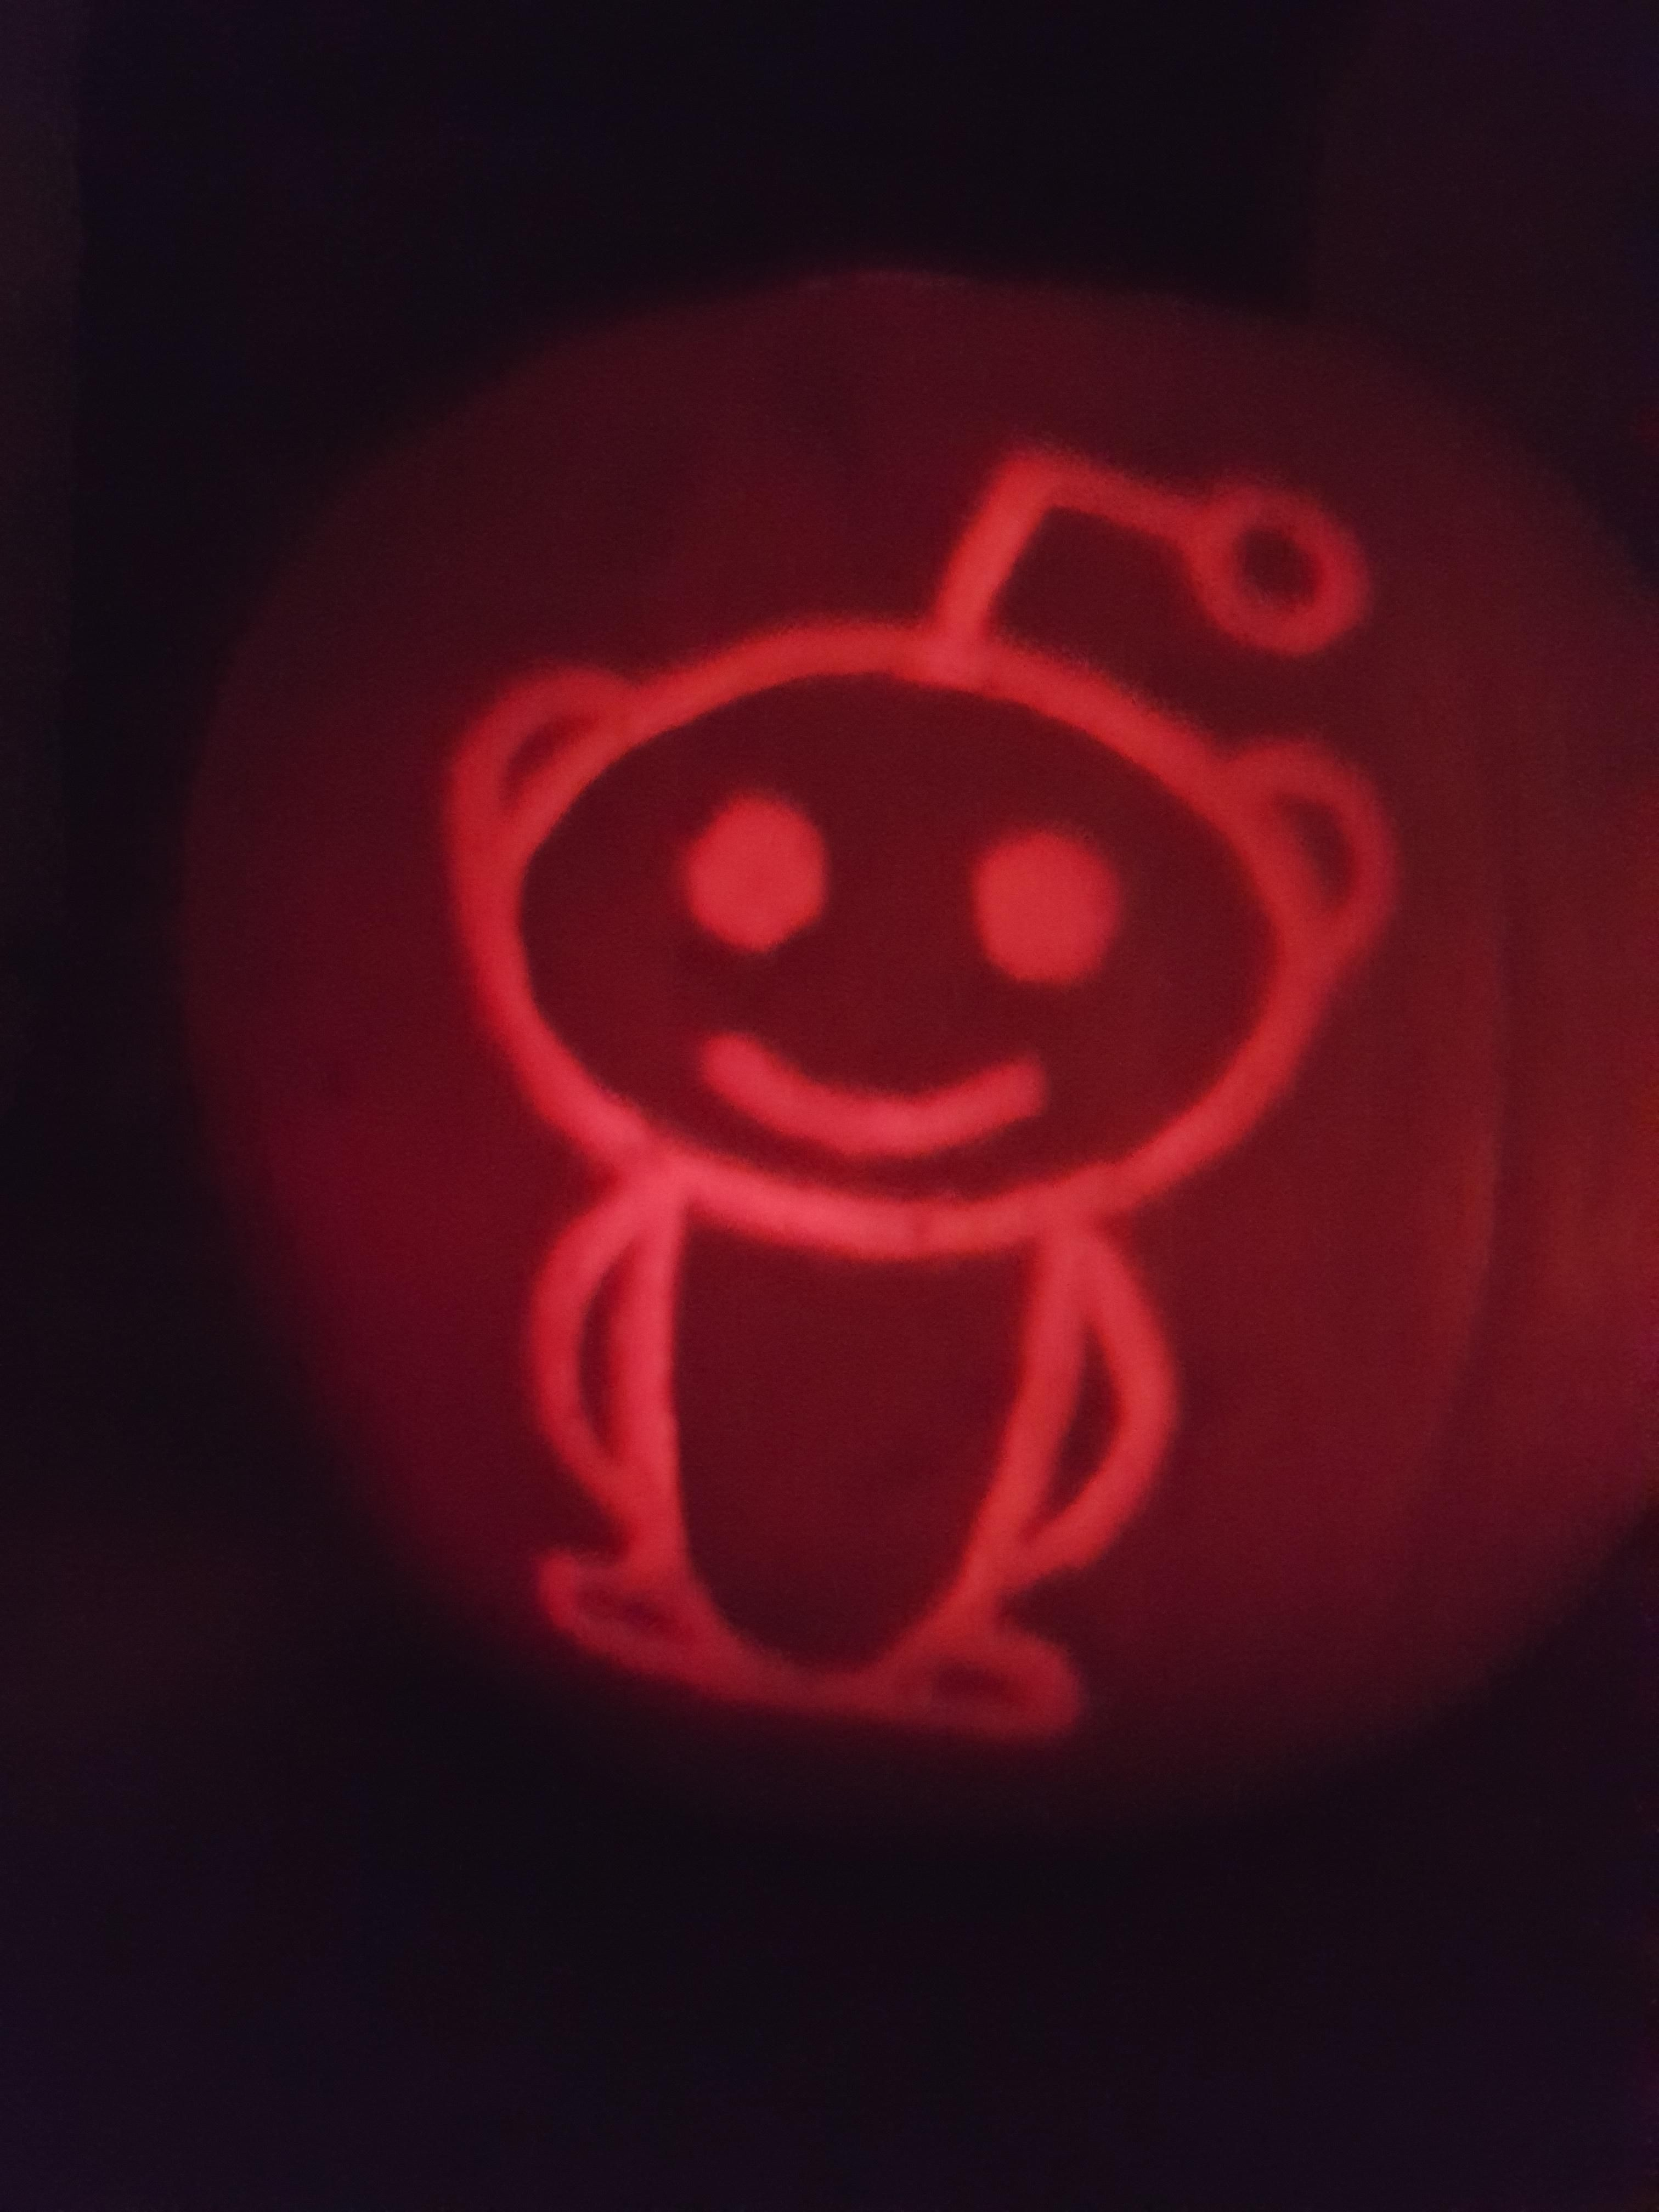 jmsrpsLittle reddit snoo on that back of this year\u0027s pumpkin! And - glow in the dark halloween decorations